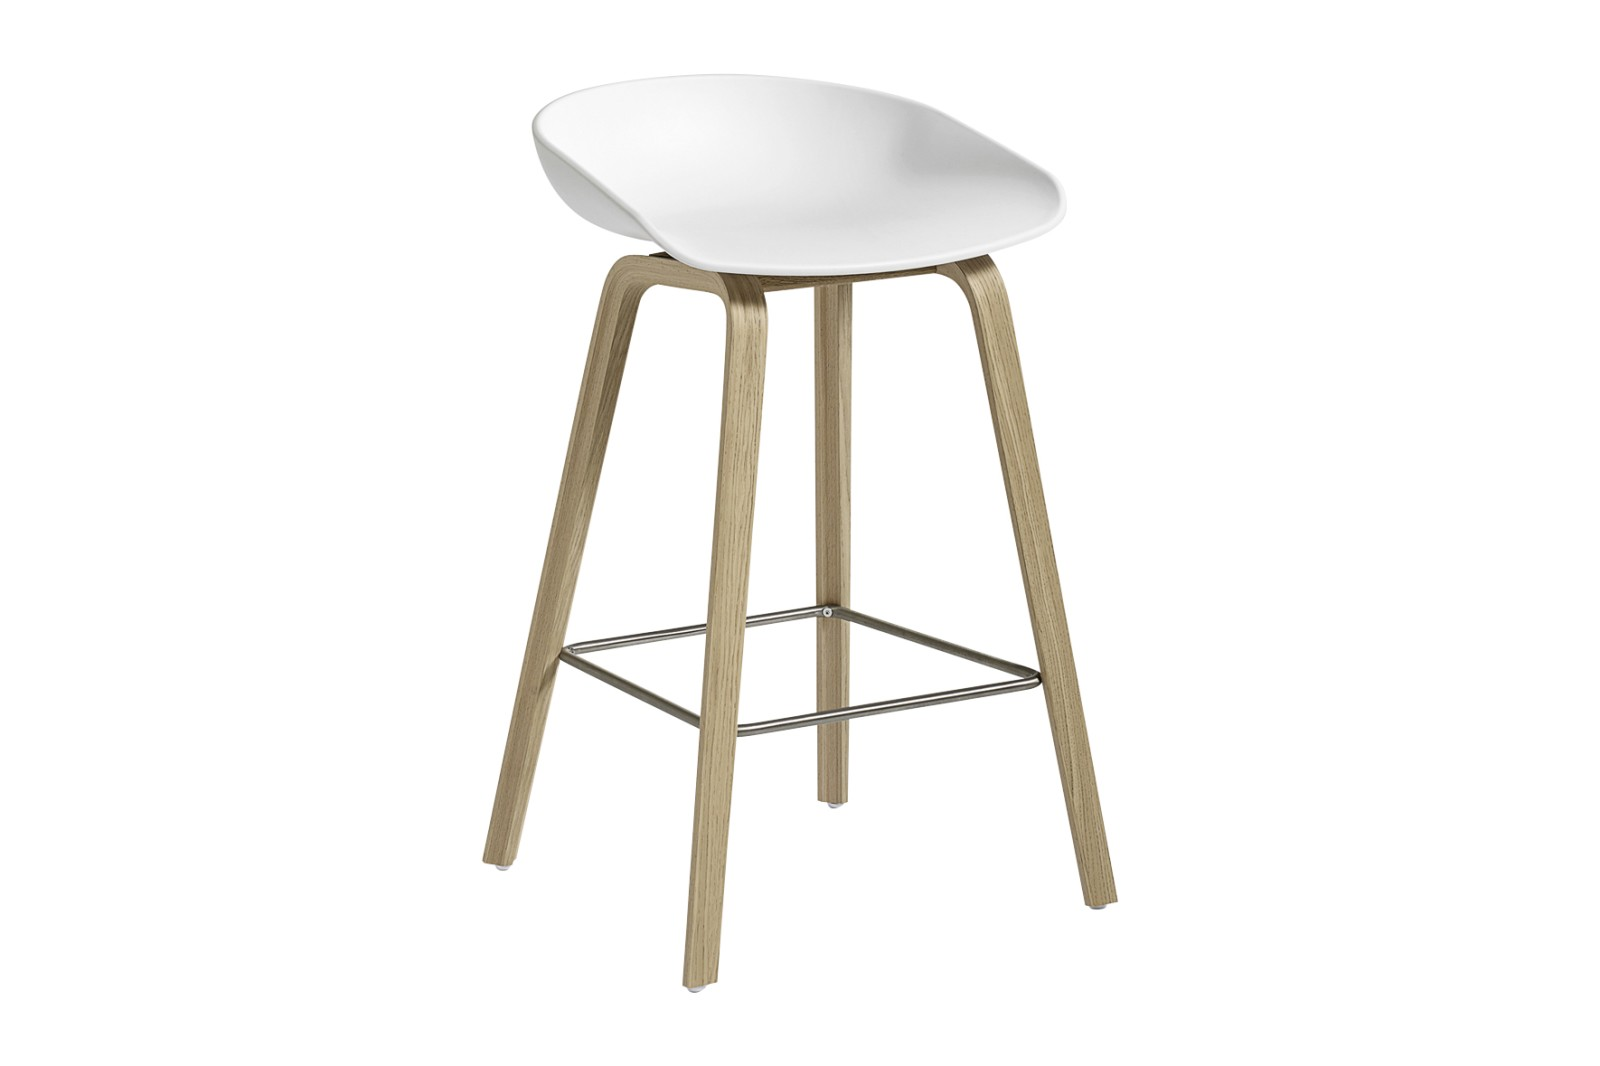 About A Stool AAS32 Matt Lacquered Oak Base, White Seat, Low, Stainless Steel